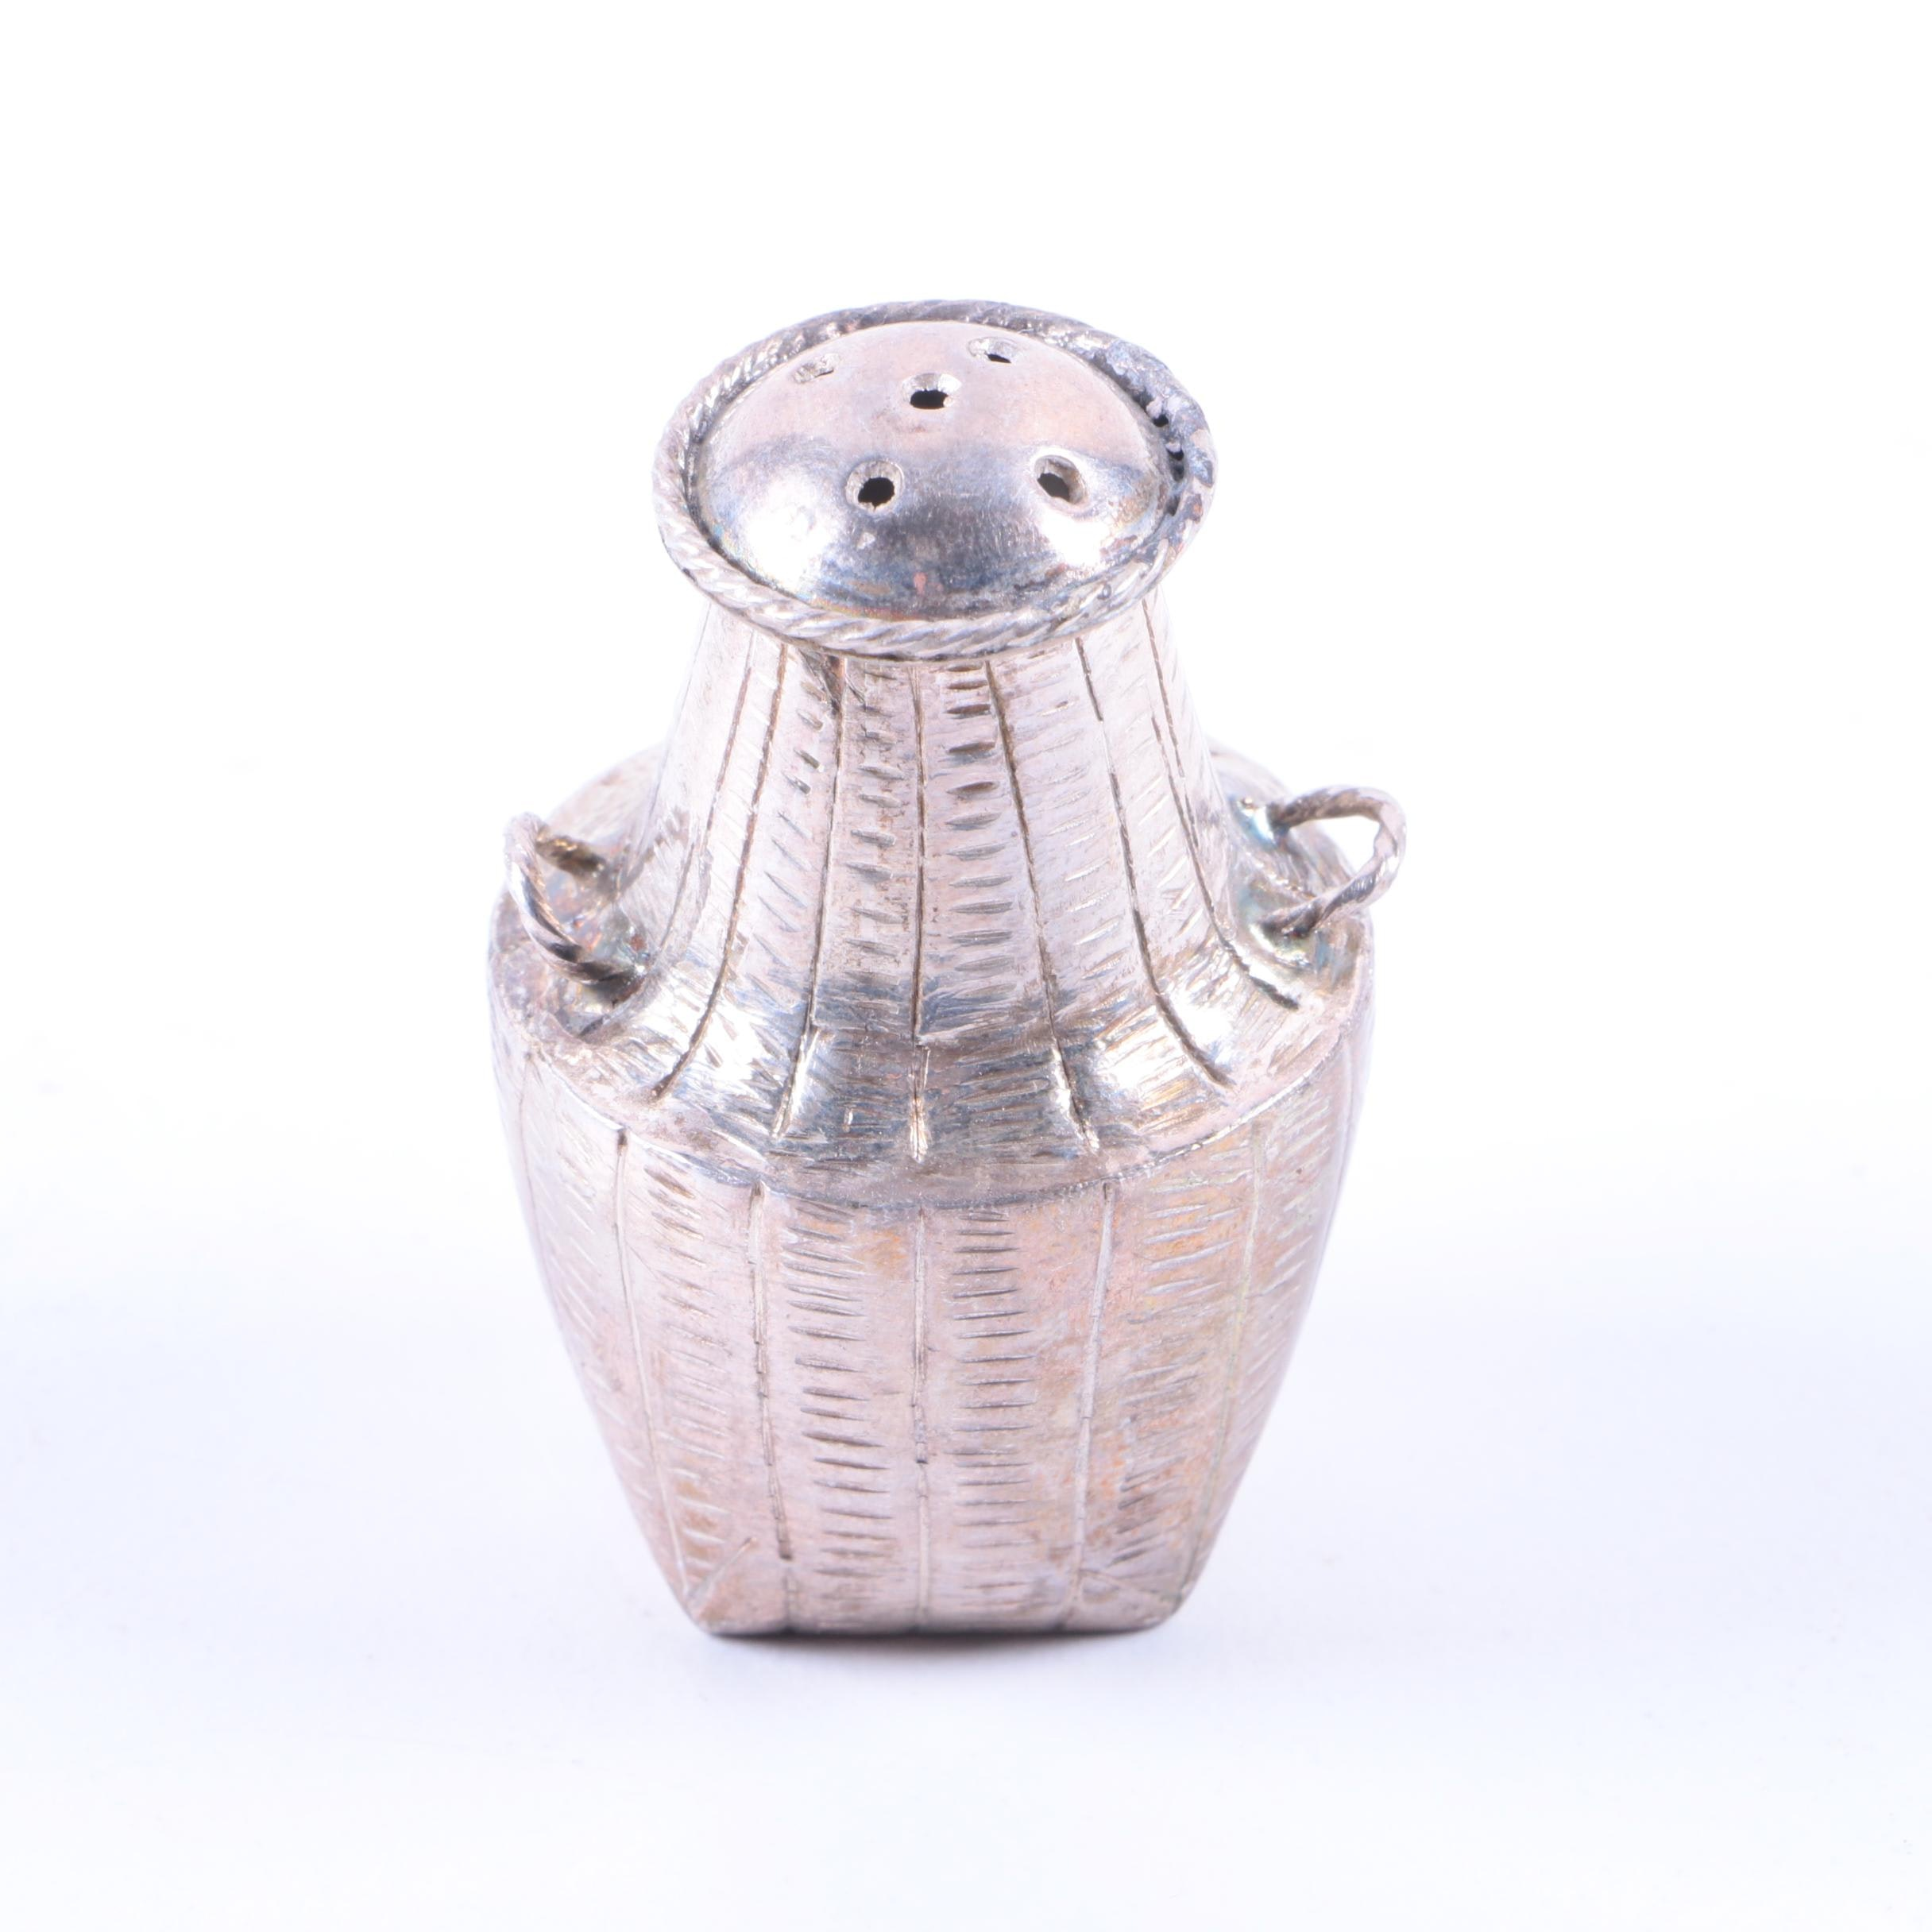 Basket-Shaped Silver-Plated Shaker